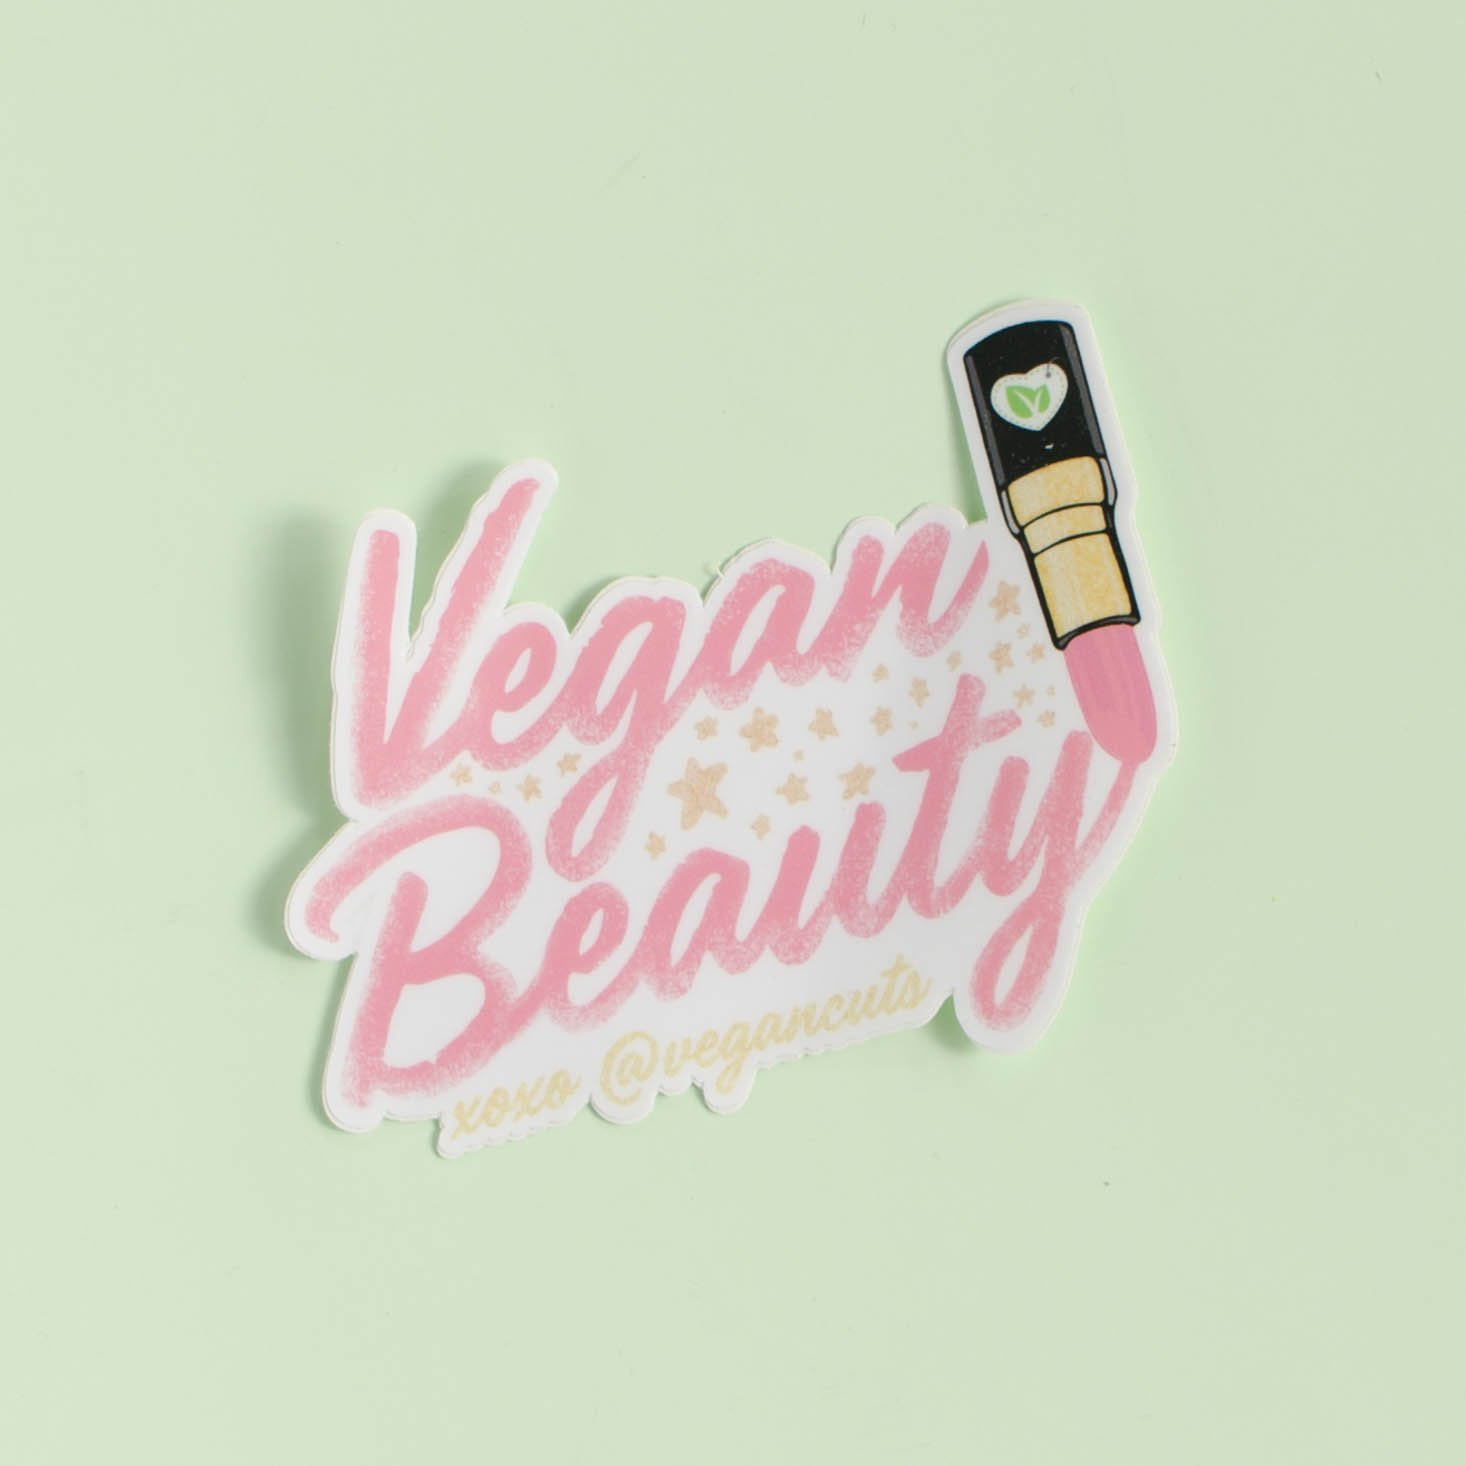 vegan-cuts-makeup-box-fall-2016-005